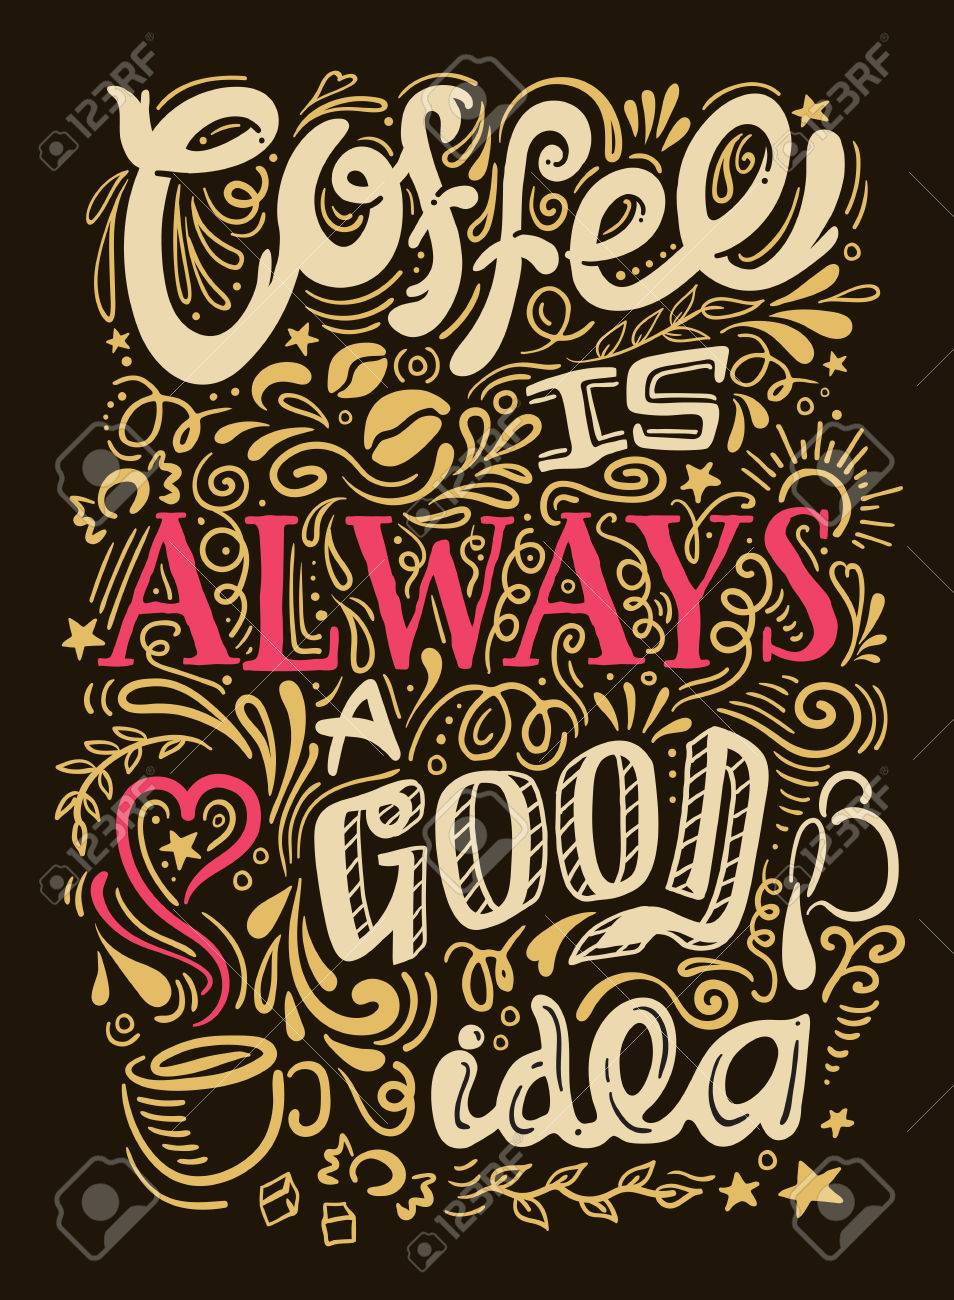 Coffee quote lettering looks like graffiti on black background with coffee is always good idea description